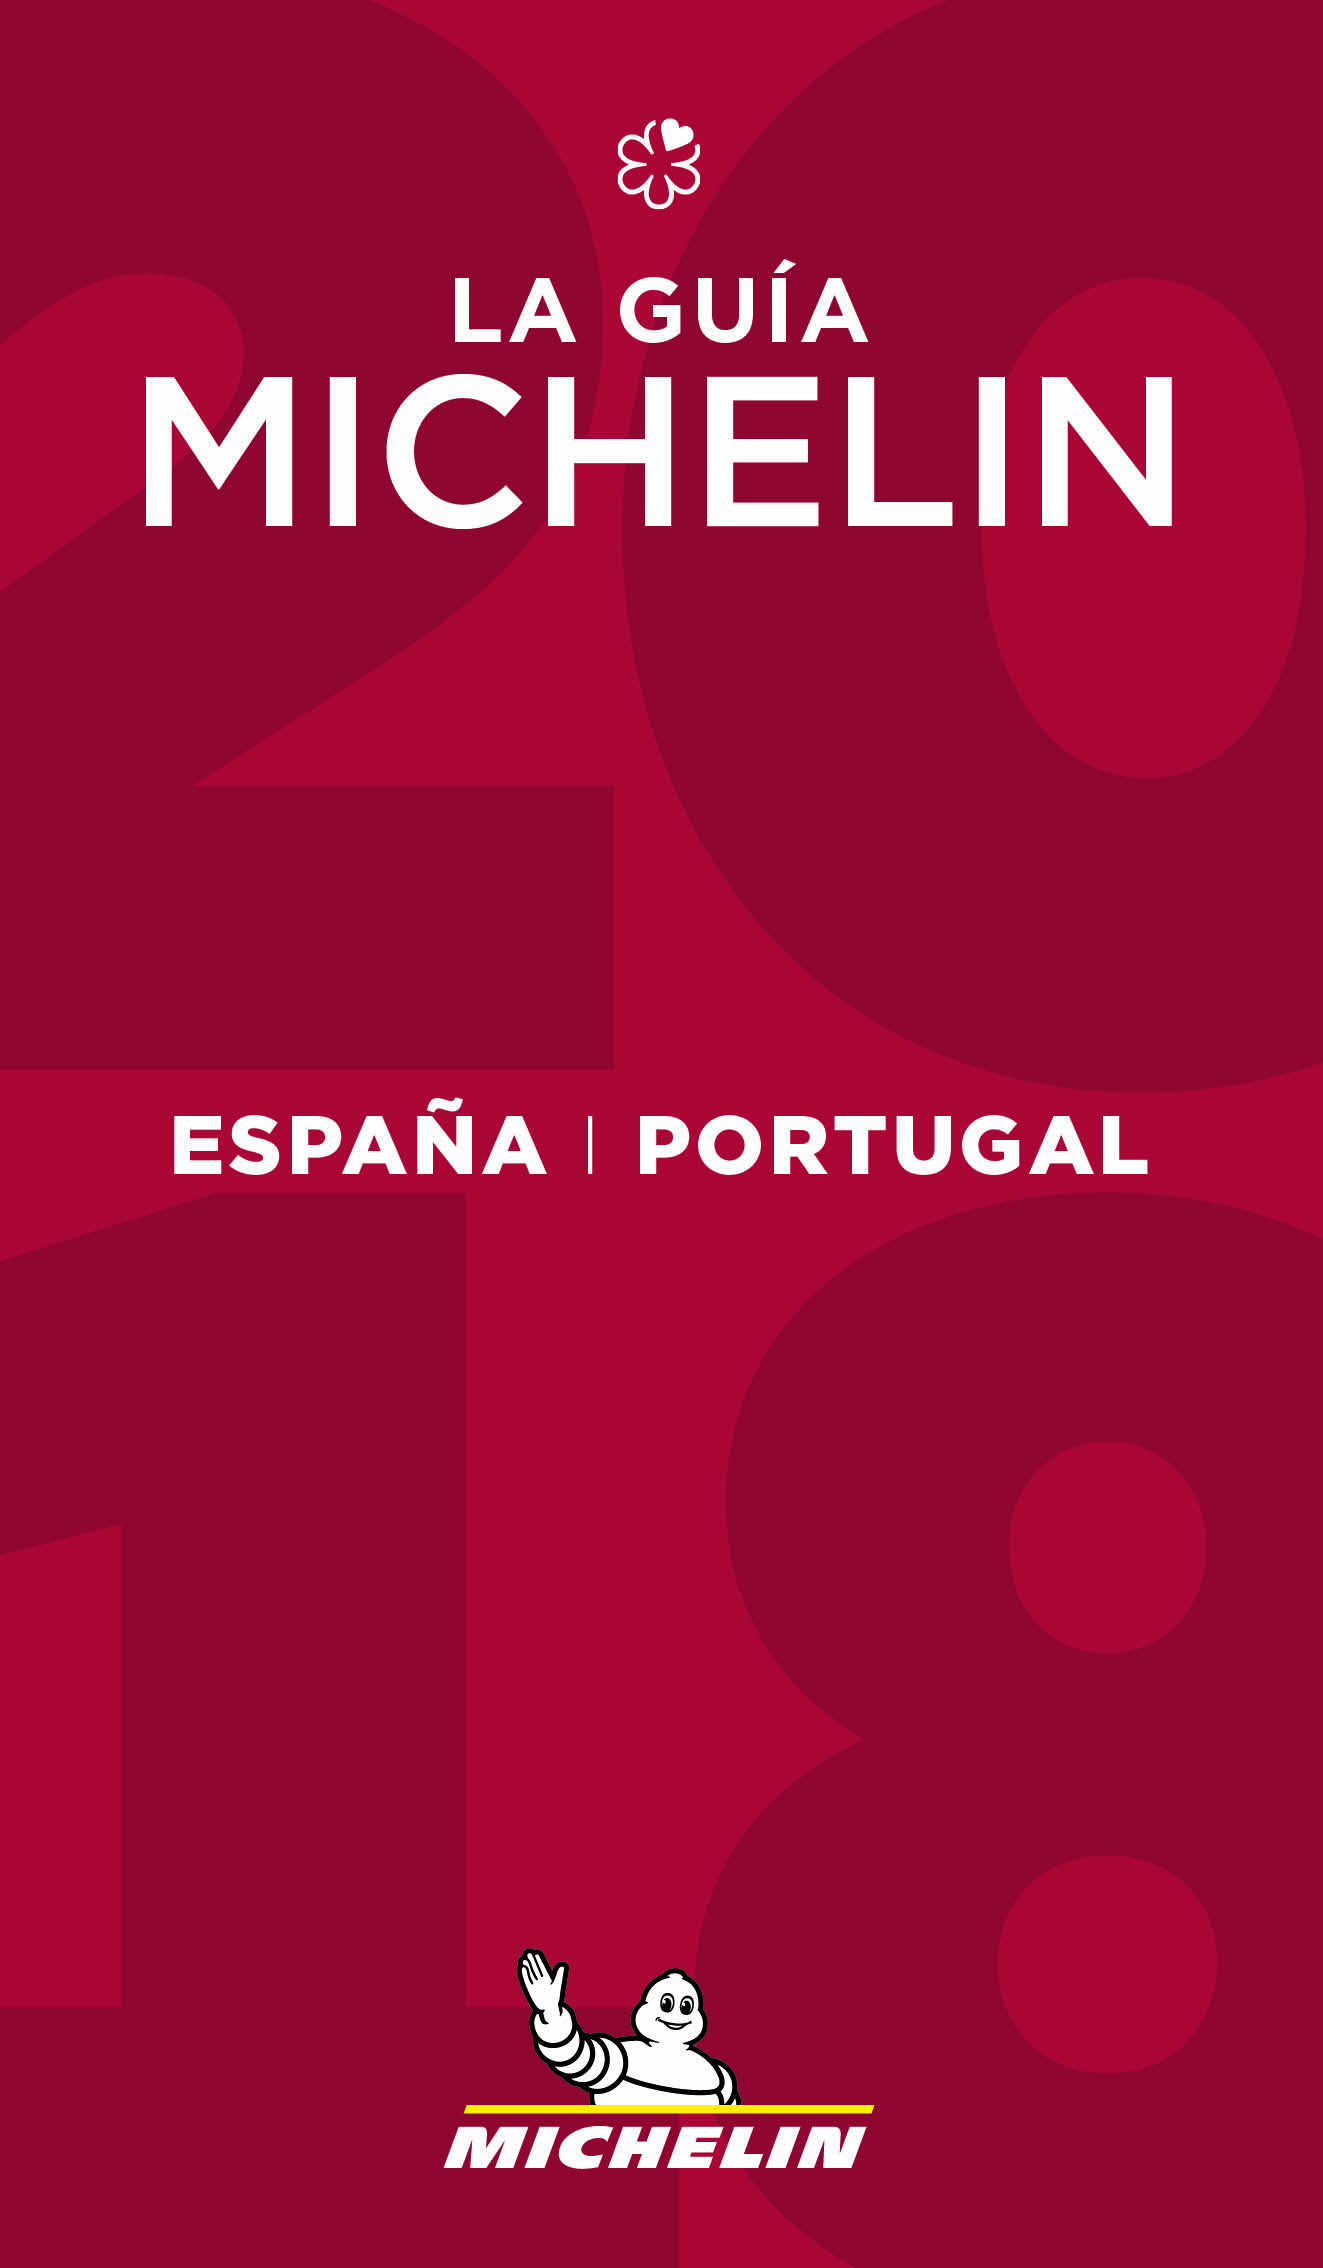 ESPANA & PORTUGAL 2018 - LA GUIA MICHELIN 2018